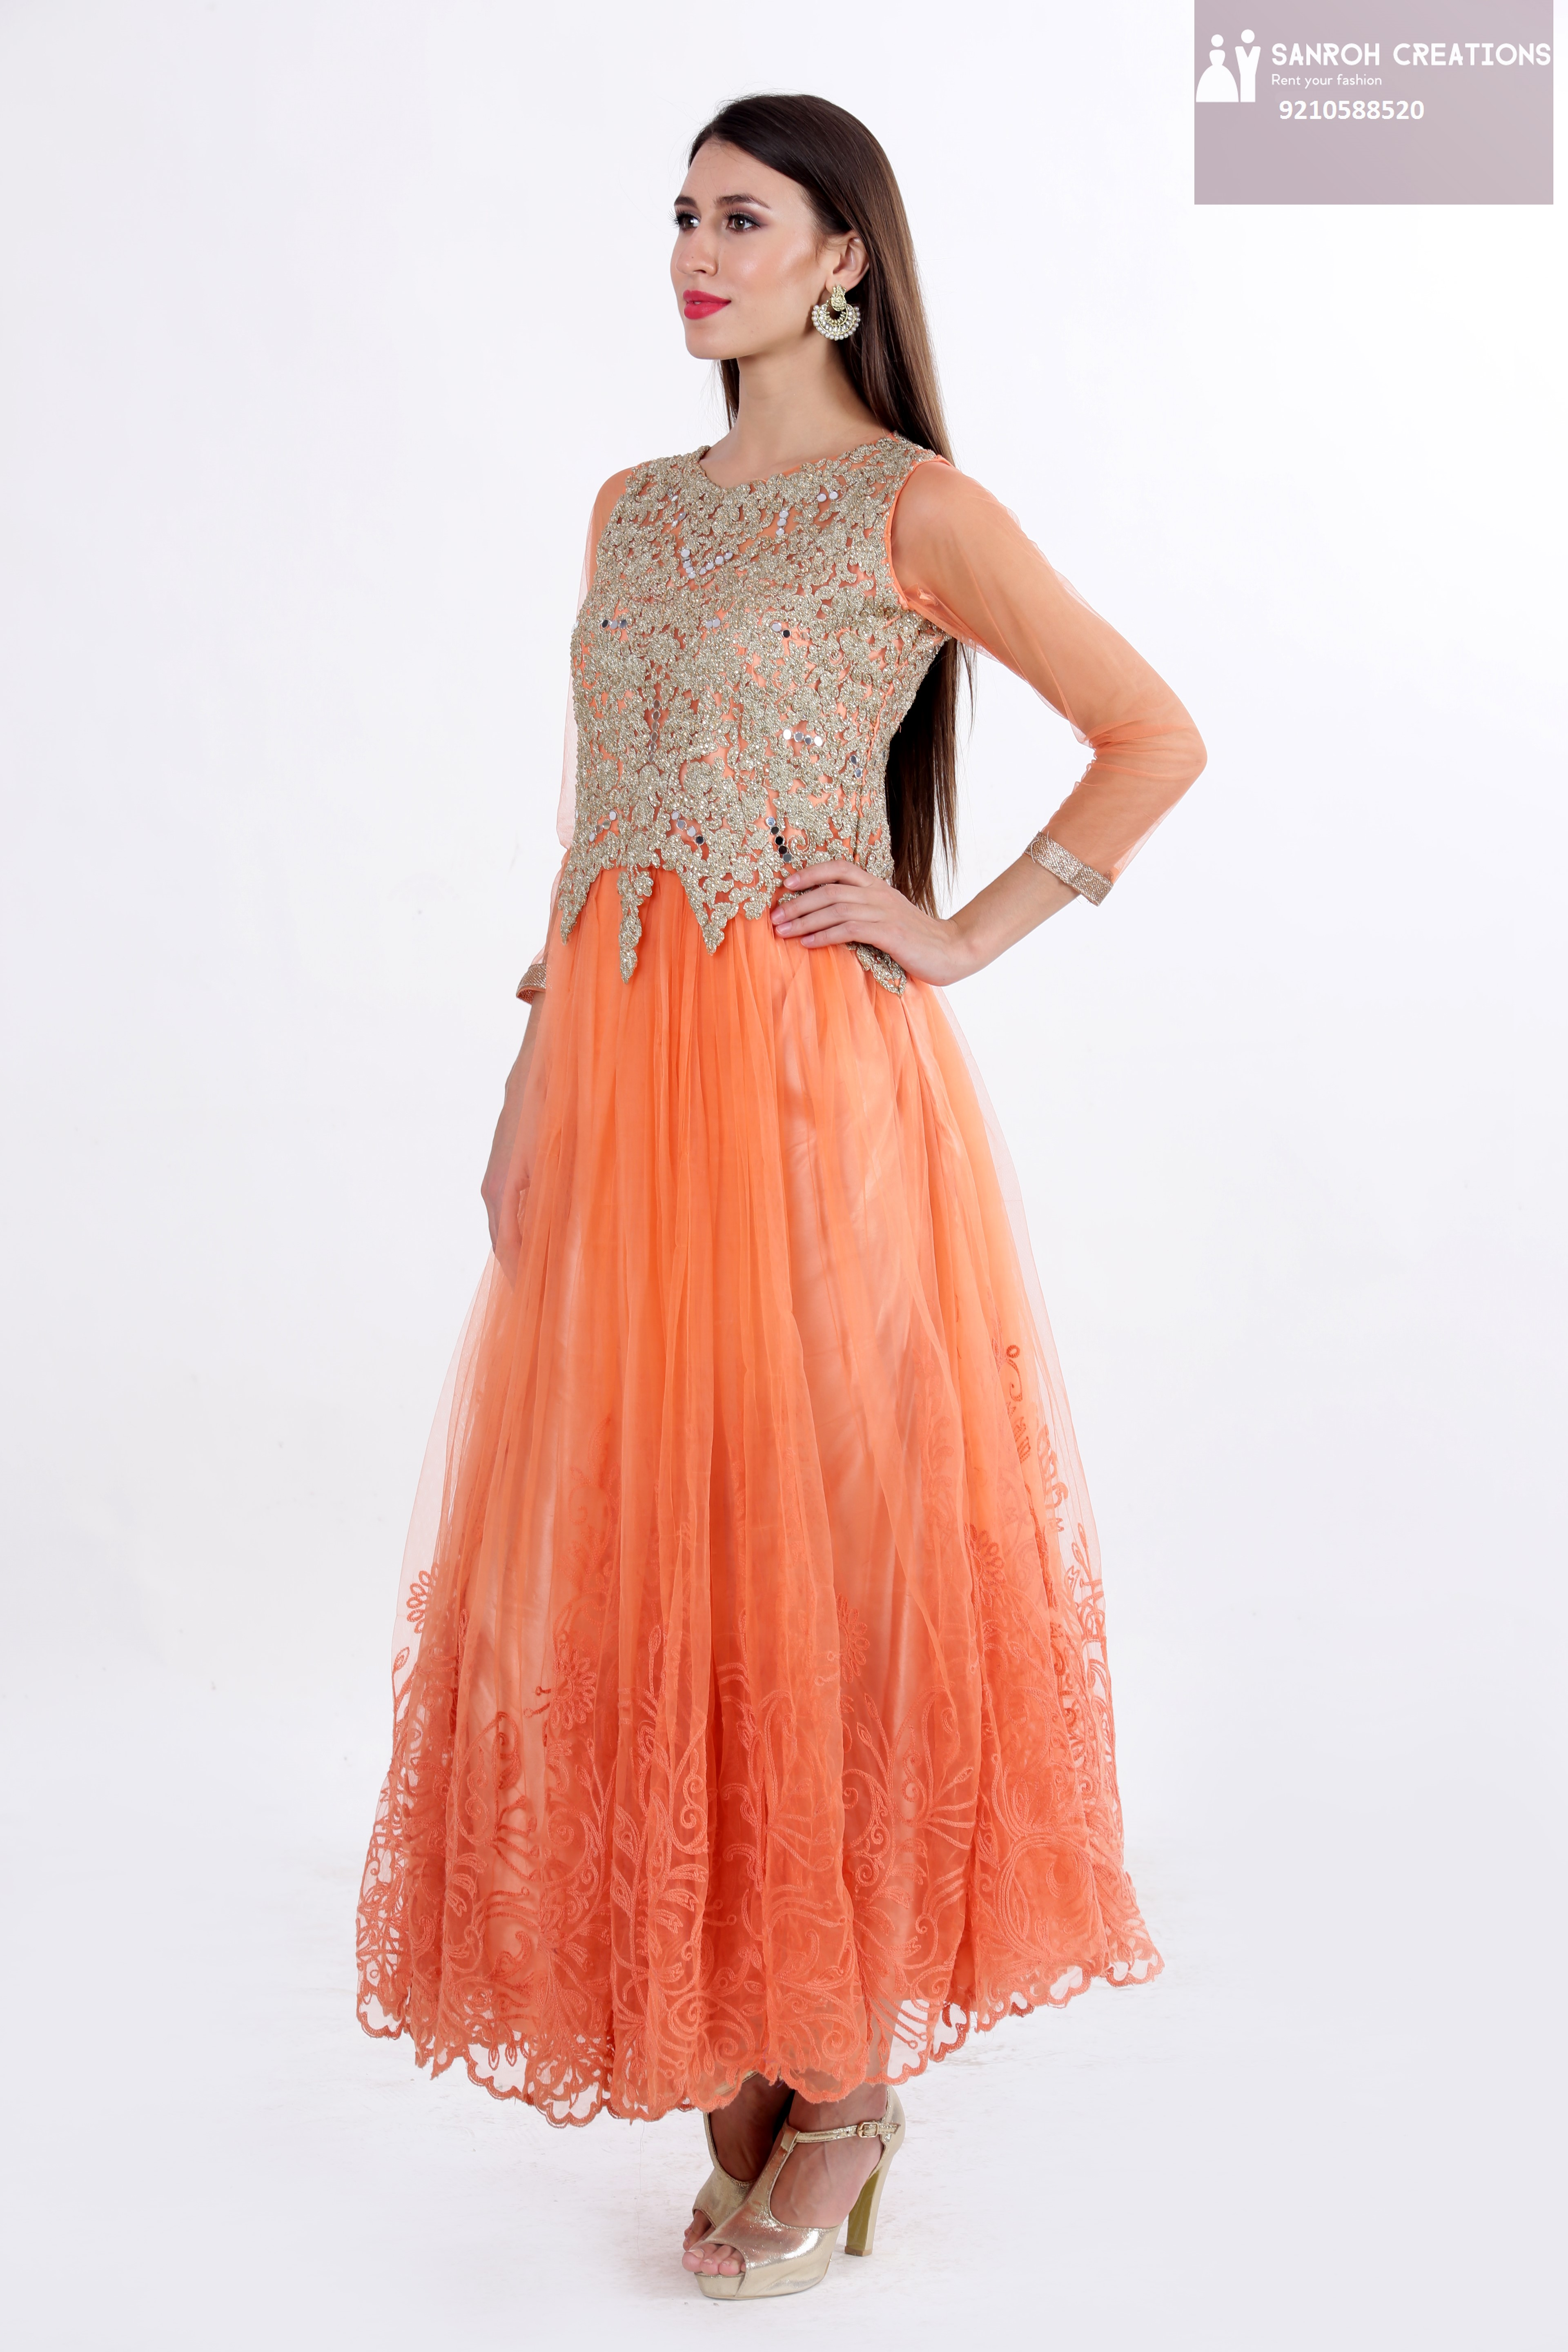 GOWNS ON RENT IN GURGAON